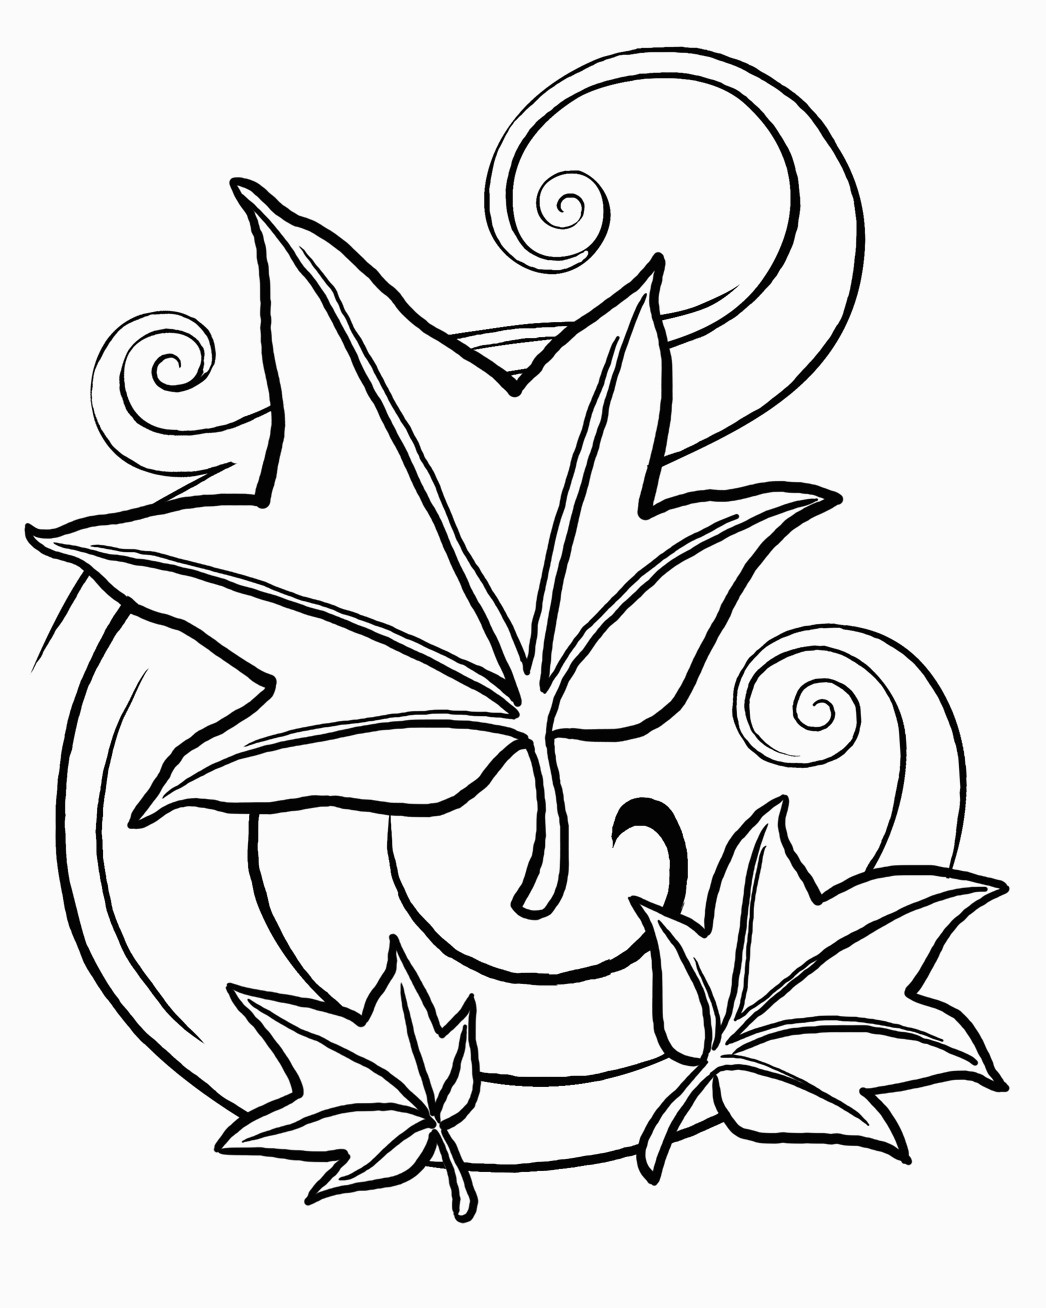 Free Leaf Coloring Pages | Printable Coloring Pages - Free Printable Leaf Coloring Pages